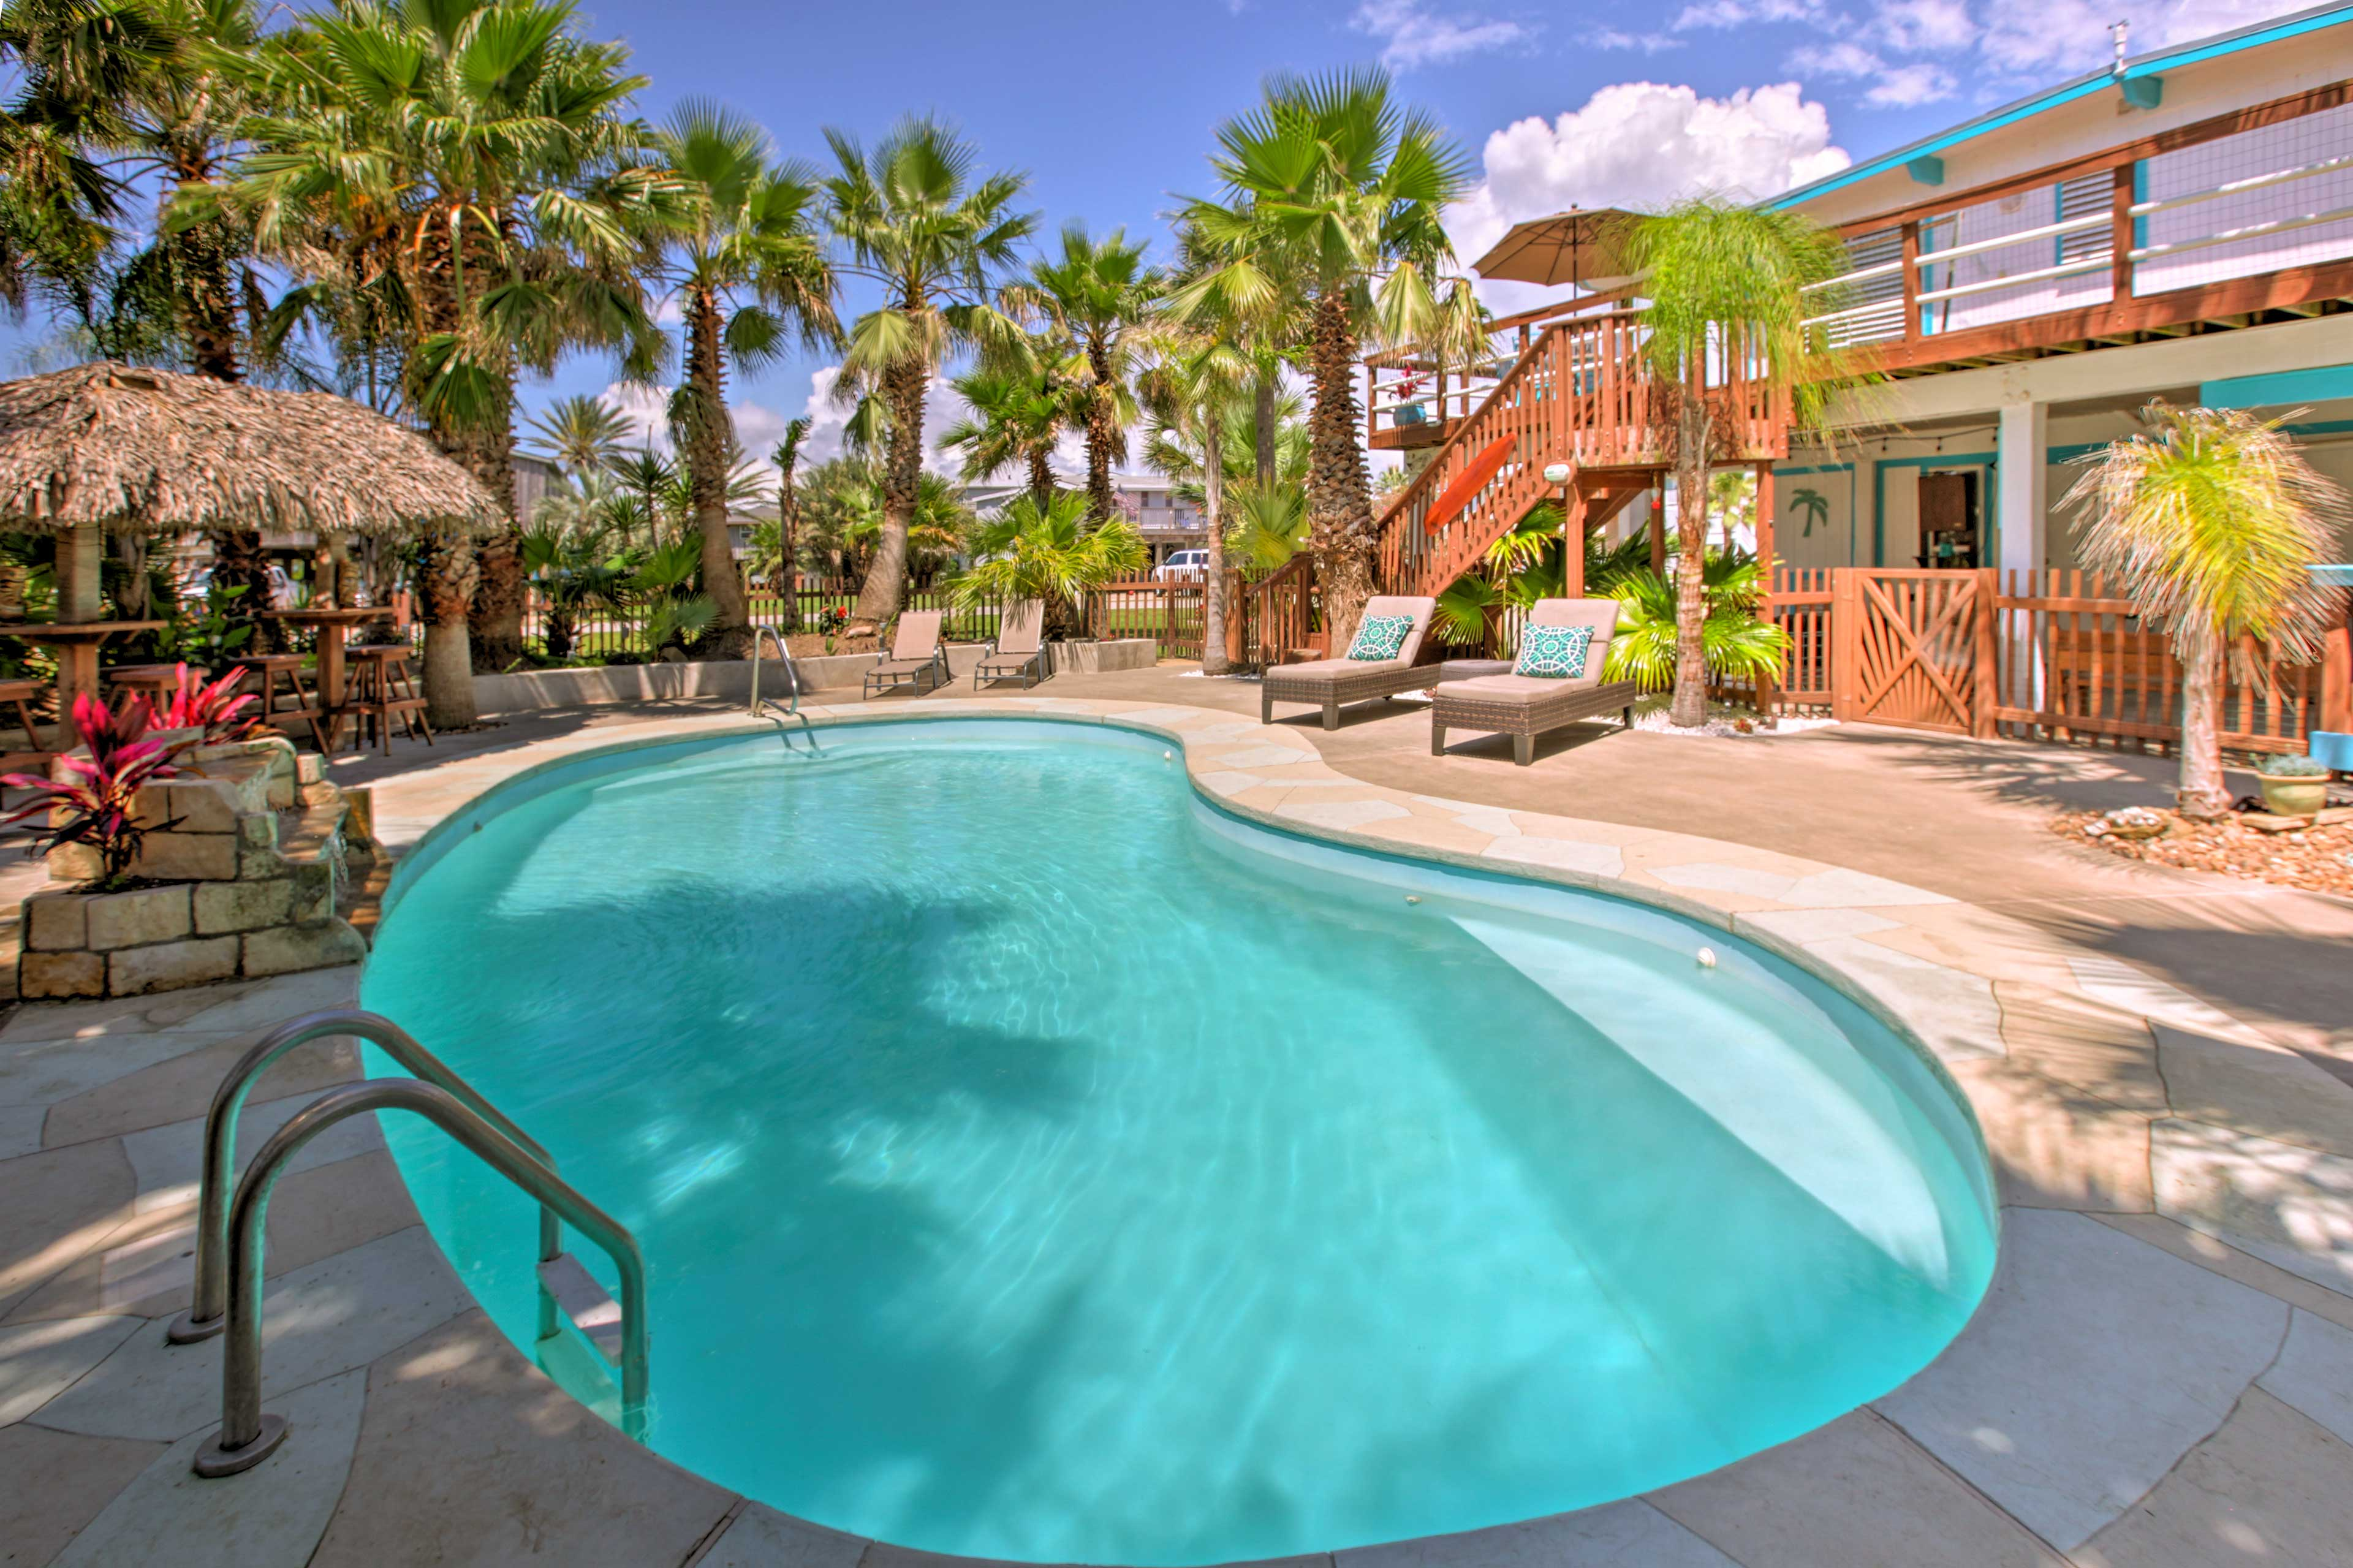 You won't want to leave your private poolside oasis.